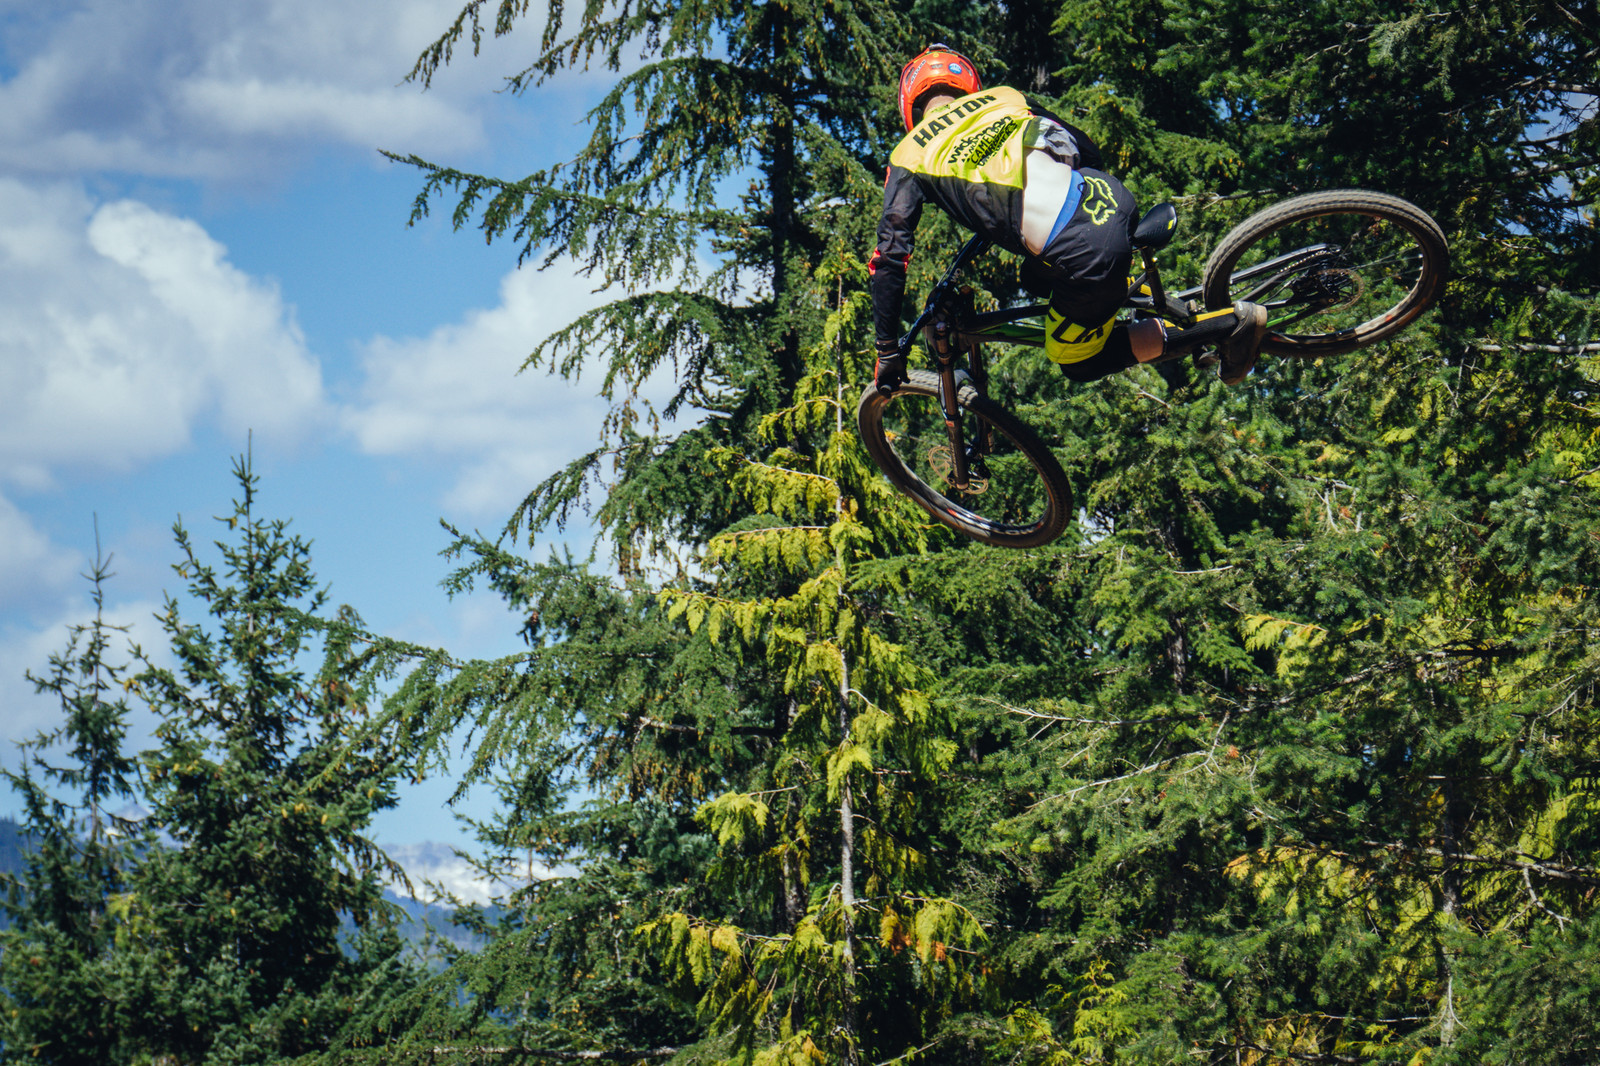 Charlie Hatton - Whip Off World Champs Qualifiers - Going for Broke: 14 Super Sideways Senders from Whip Off World Champs Qualifiers - Mountain Biking Pictures - Vital MTB